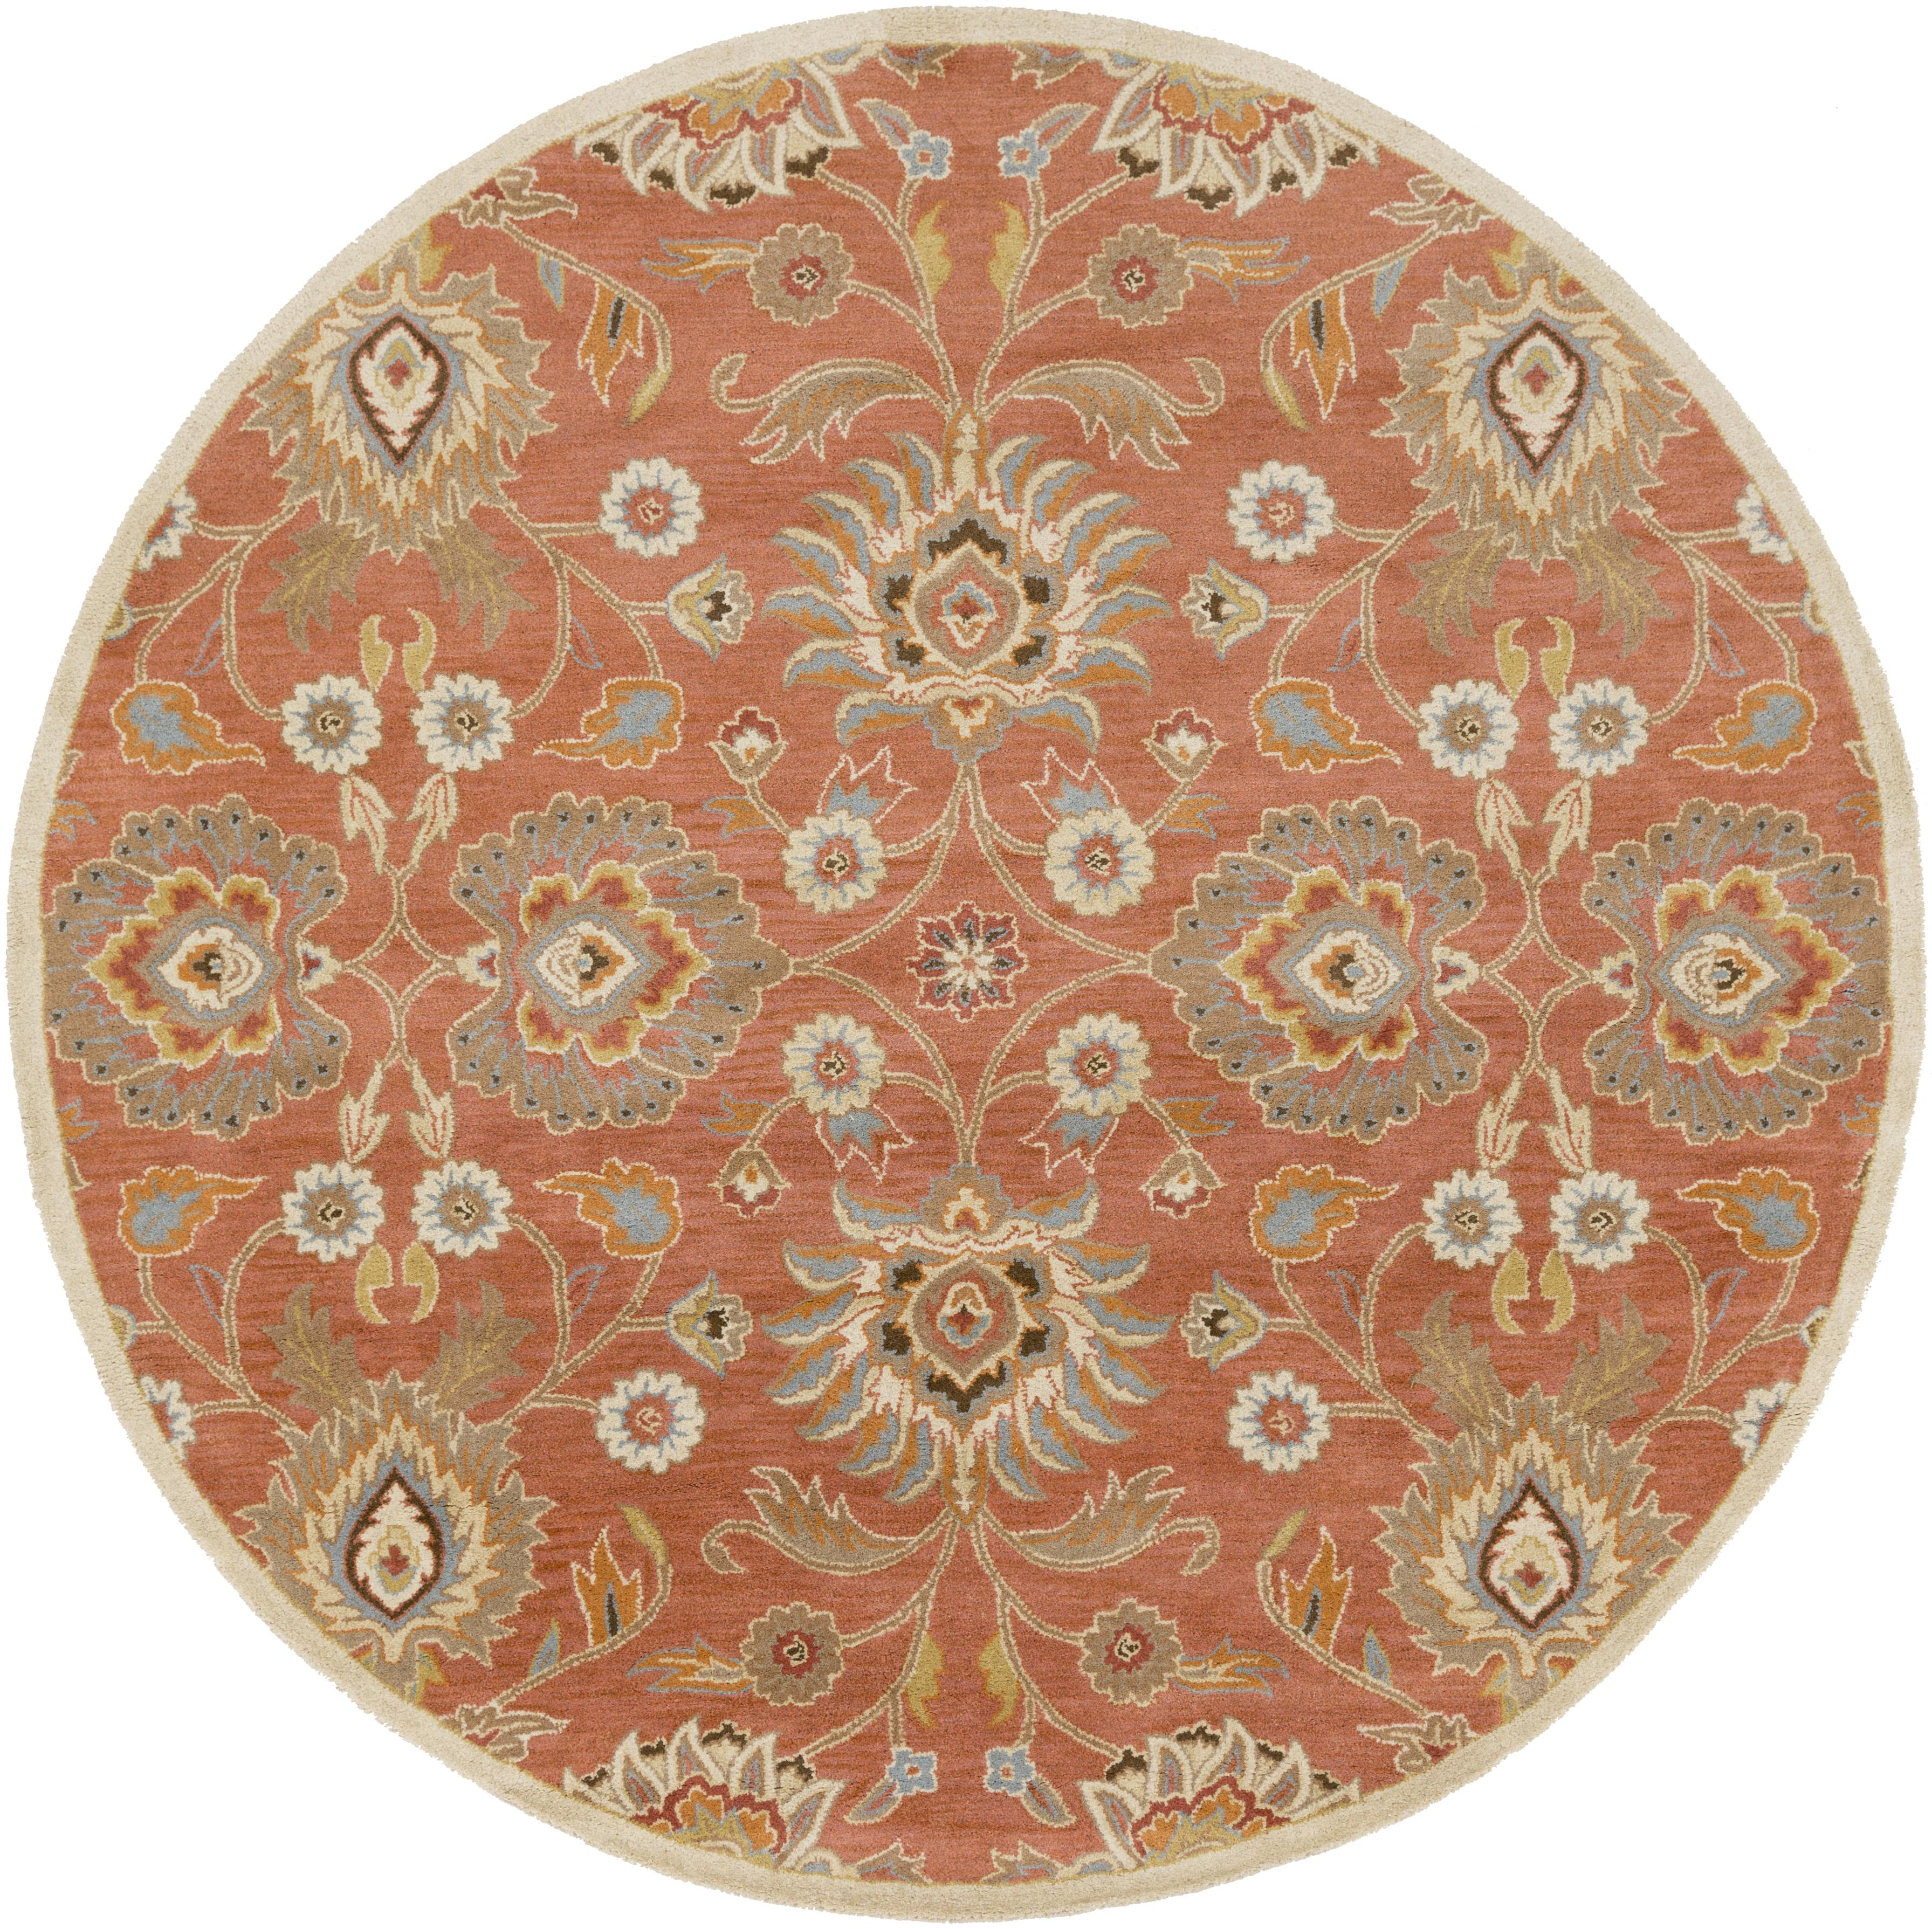 Caesar 4' Round by Surya at Esprit Decor Home Furnishings